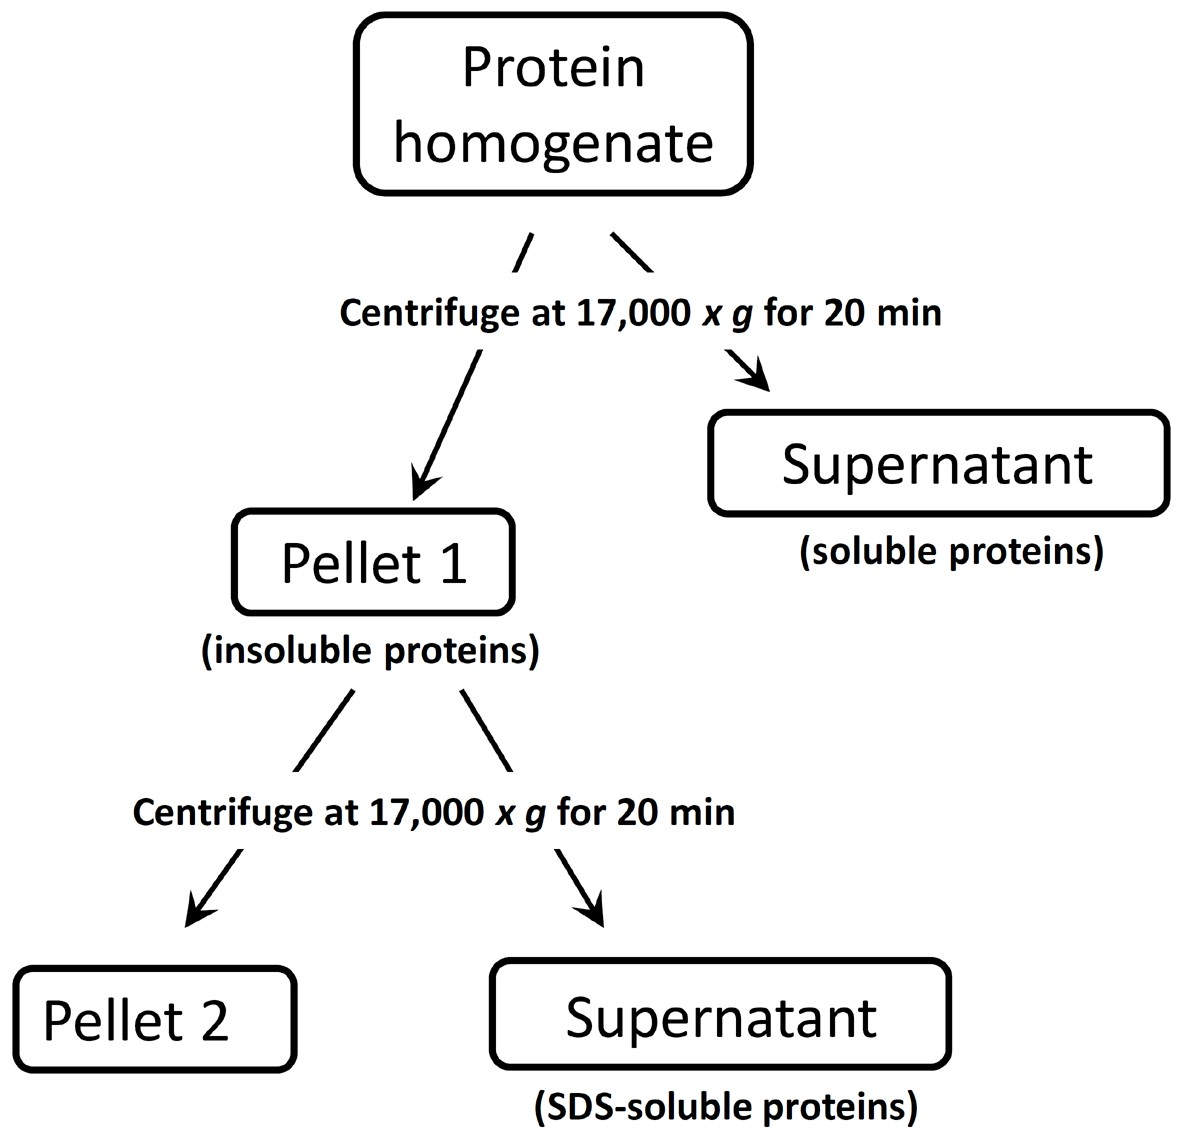 Extraction Of Soluble And Insoluble Protein Fractions From